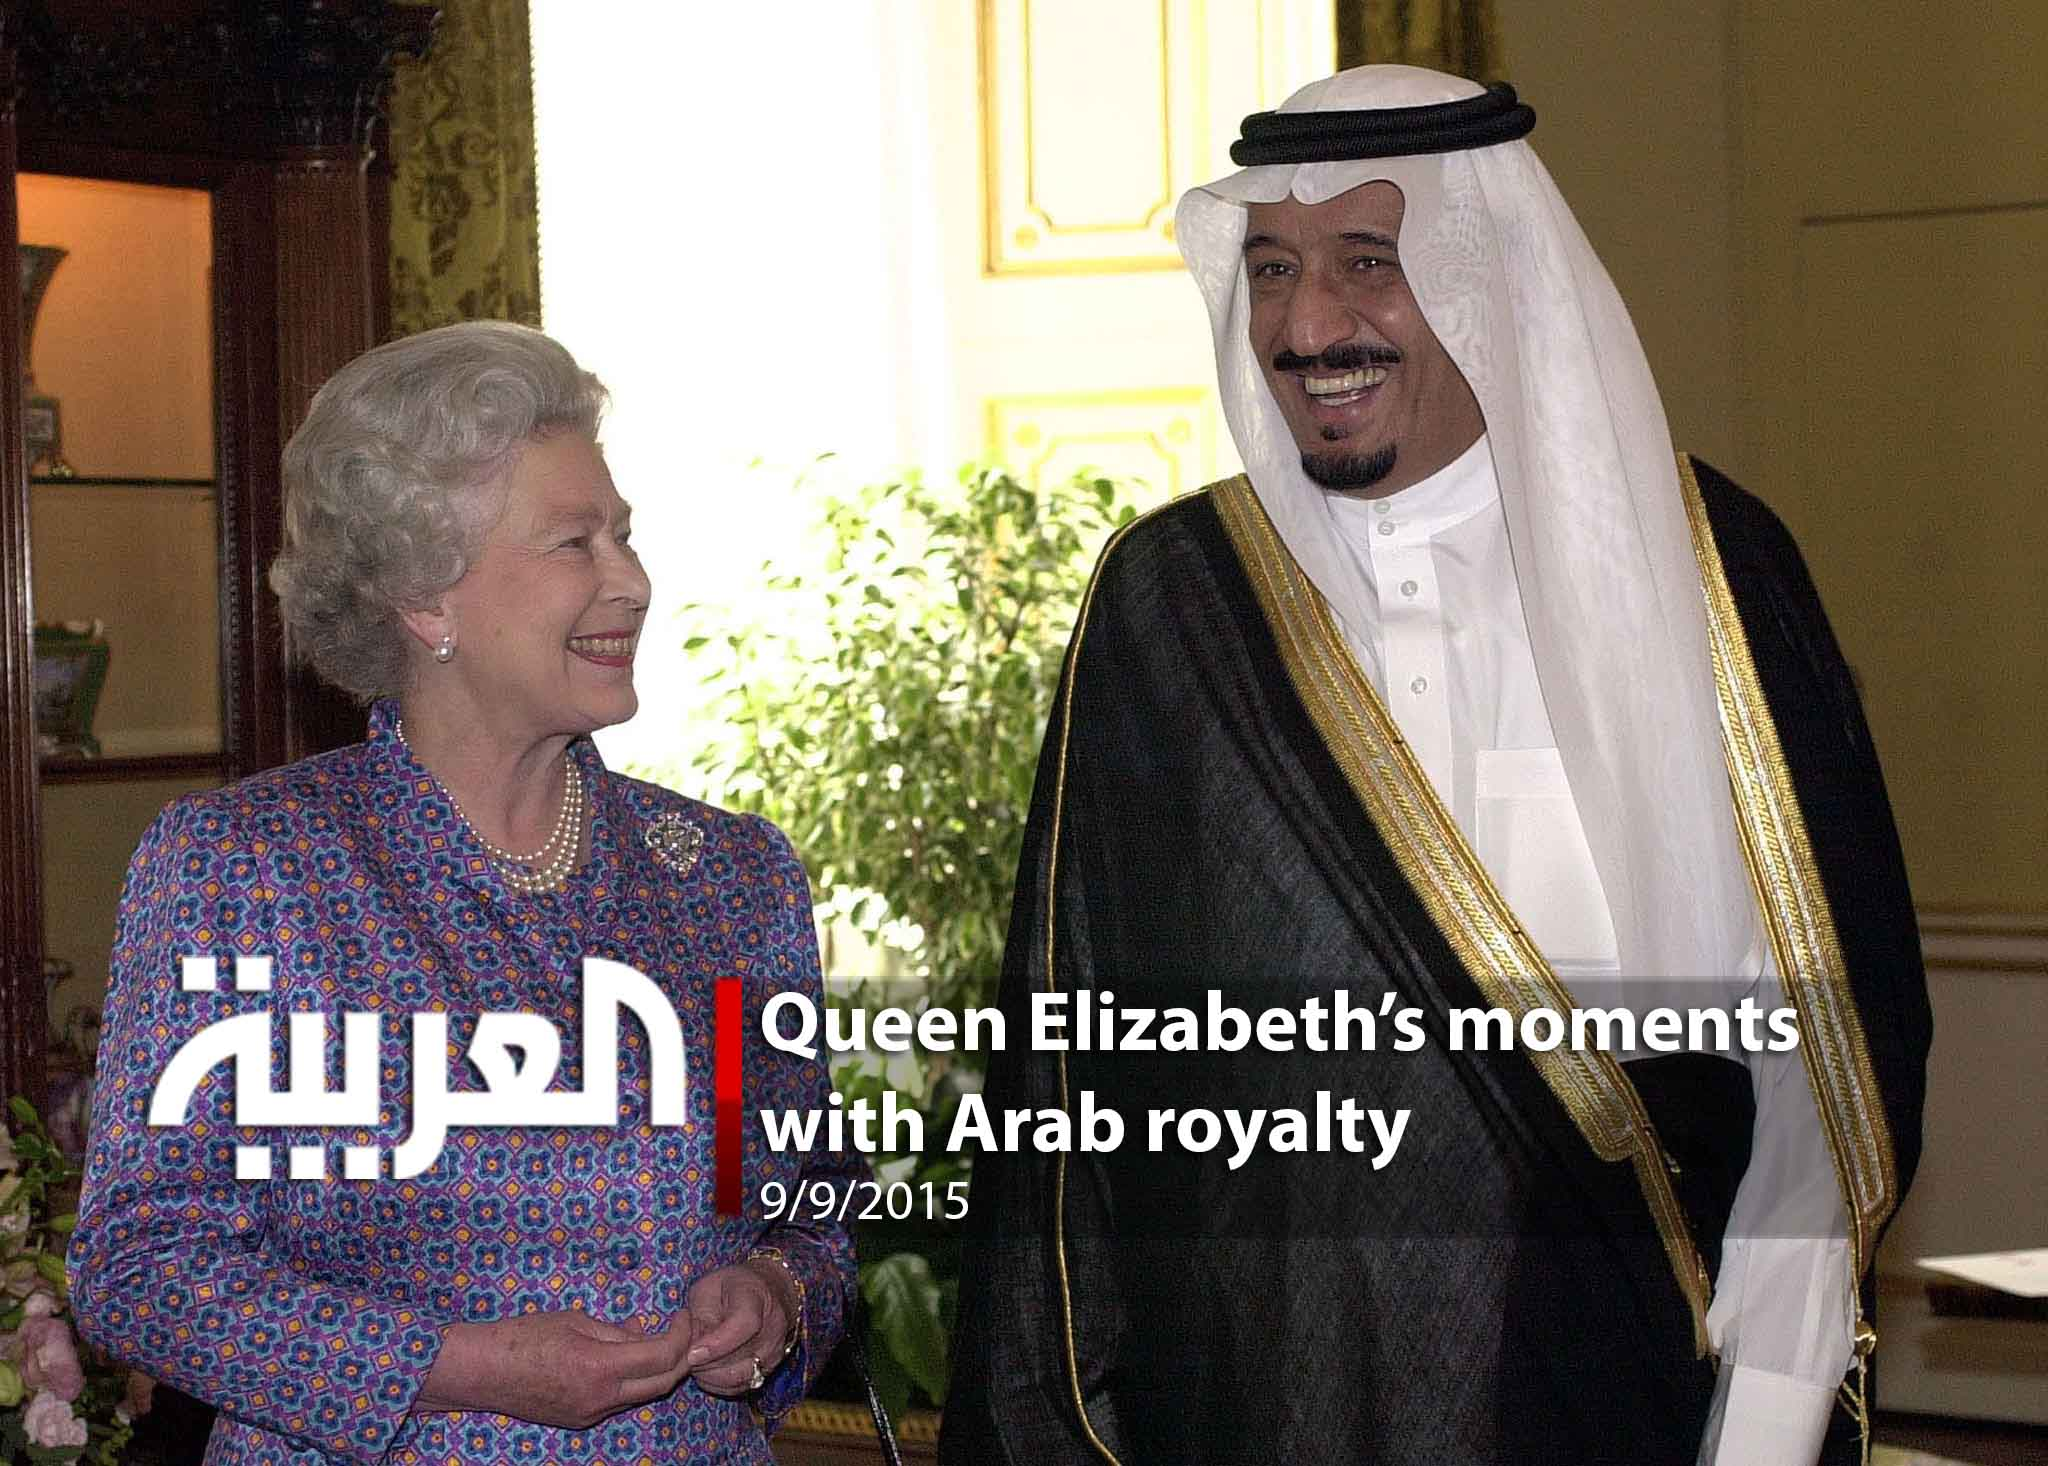 Britain's Queen Elizabeth II and then Prince Salman, now King Salman bin Abdul Aziz of Saudi Arabia laugh together before going in to lunch at Buckingham Palace in London, June 28, 2000. (Reuters)